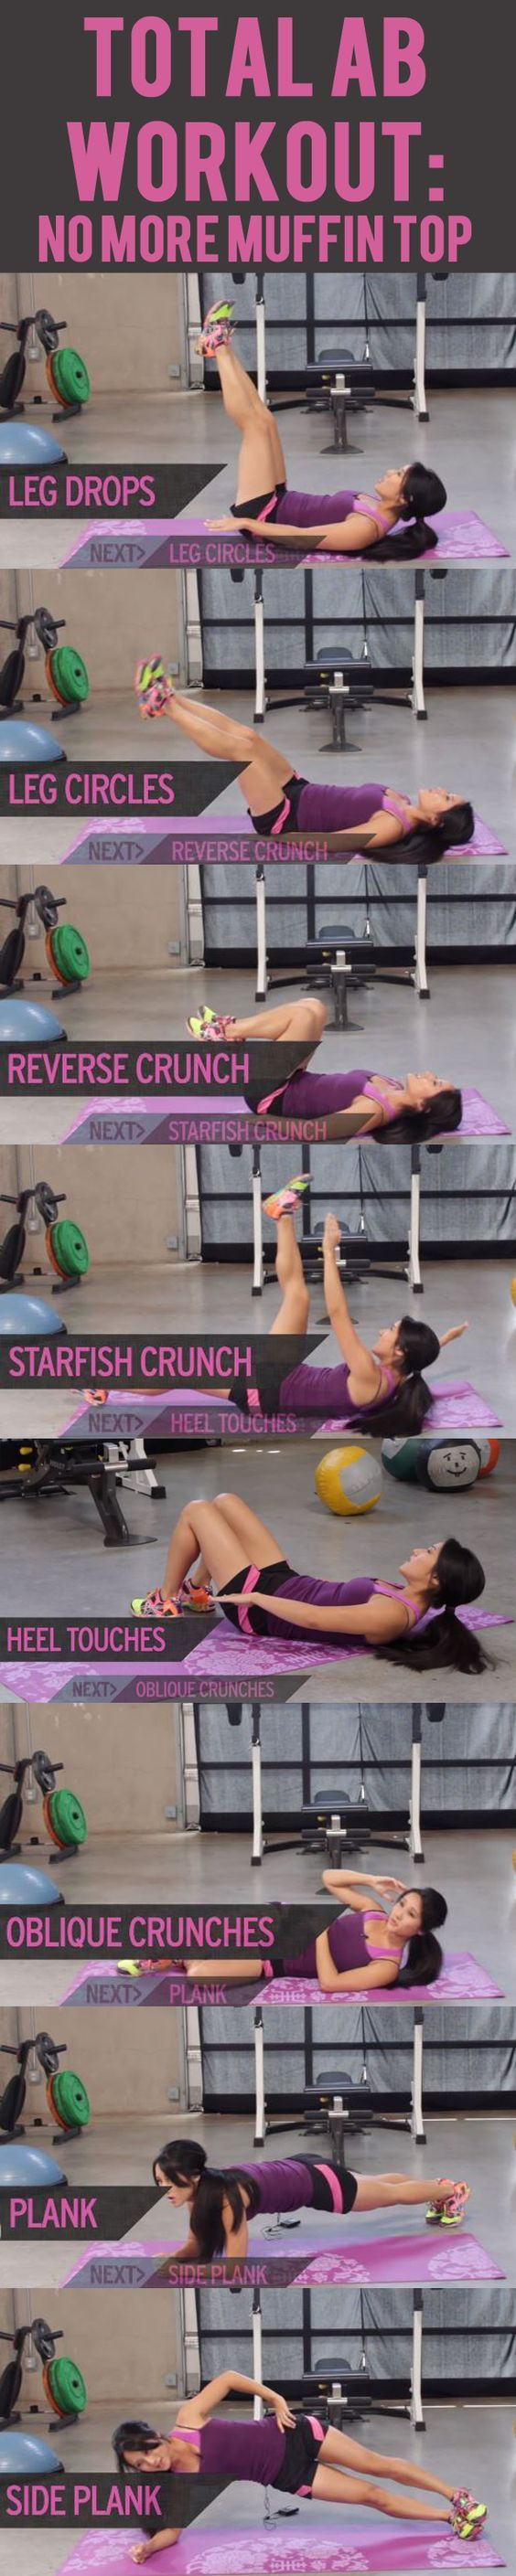 This workout will show you some of the best ab exercises for toning and slimming your waist and abs to banish that muffin top for good.